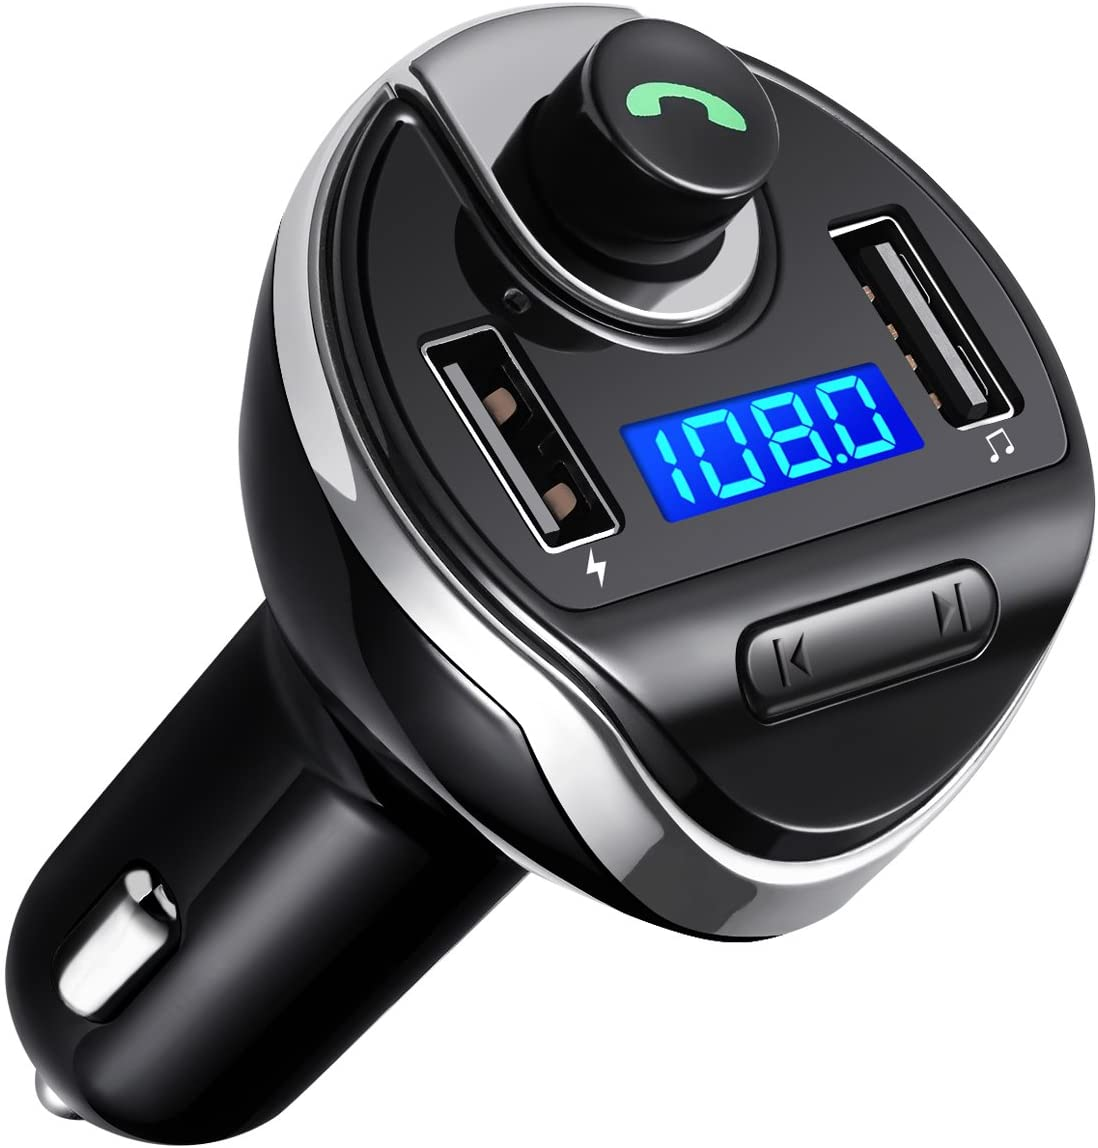 Criacr (Upgraded Version) Bluetooth FM Transmitter for Car, Dual USB Charging Ports & HI-FI Stereo Sound Wireless Radio Adapter Music Player Kit with Hands-Free Calling, Compatible for All Smartphones